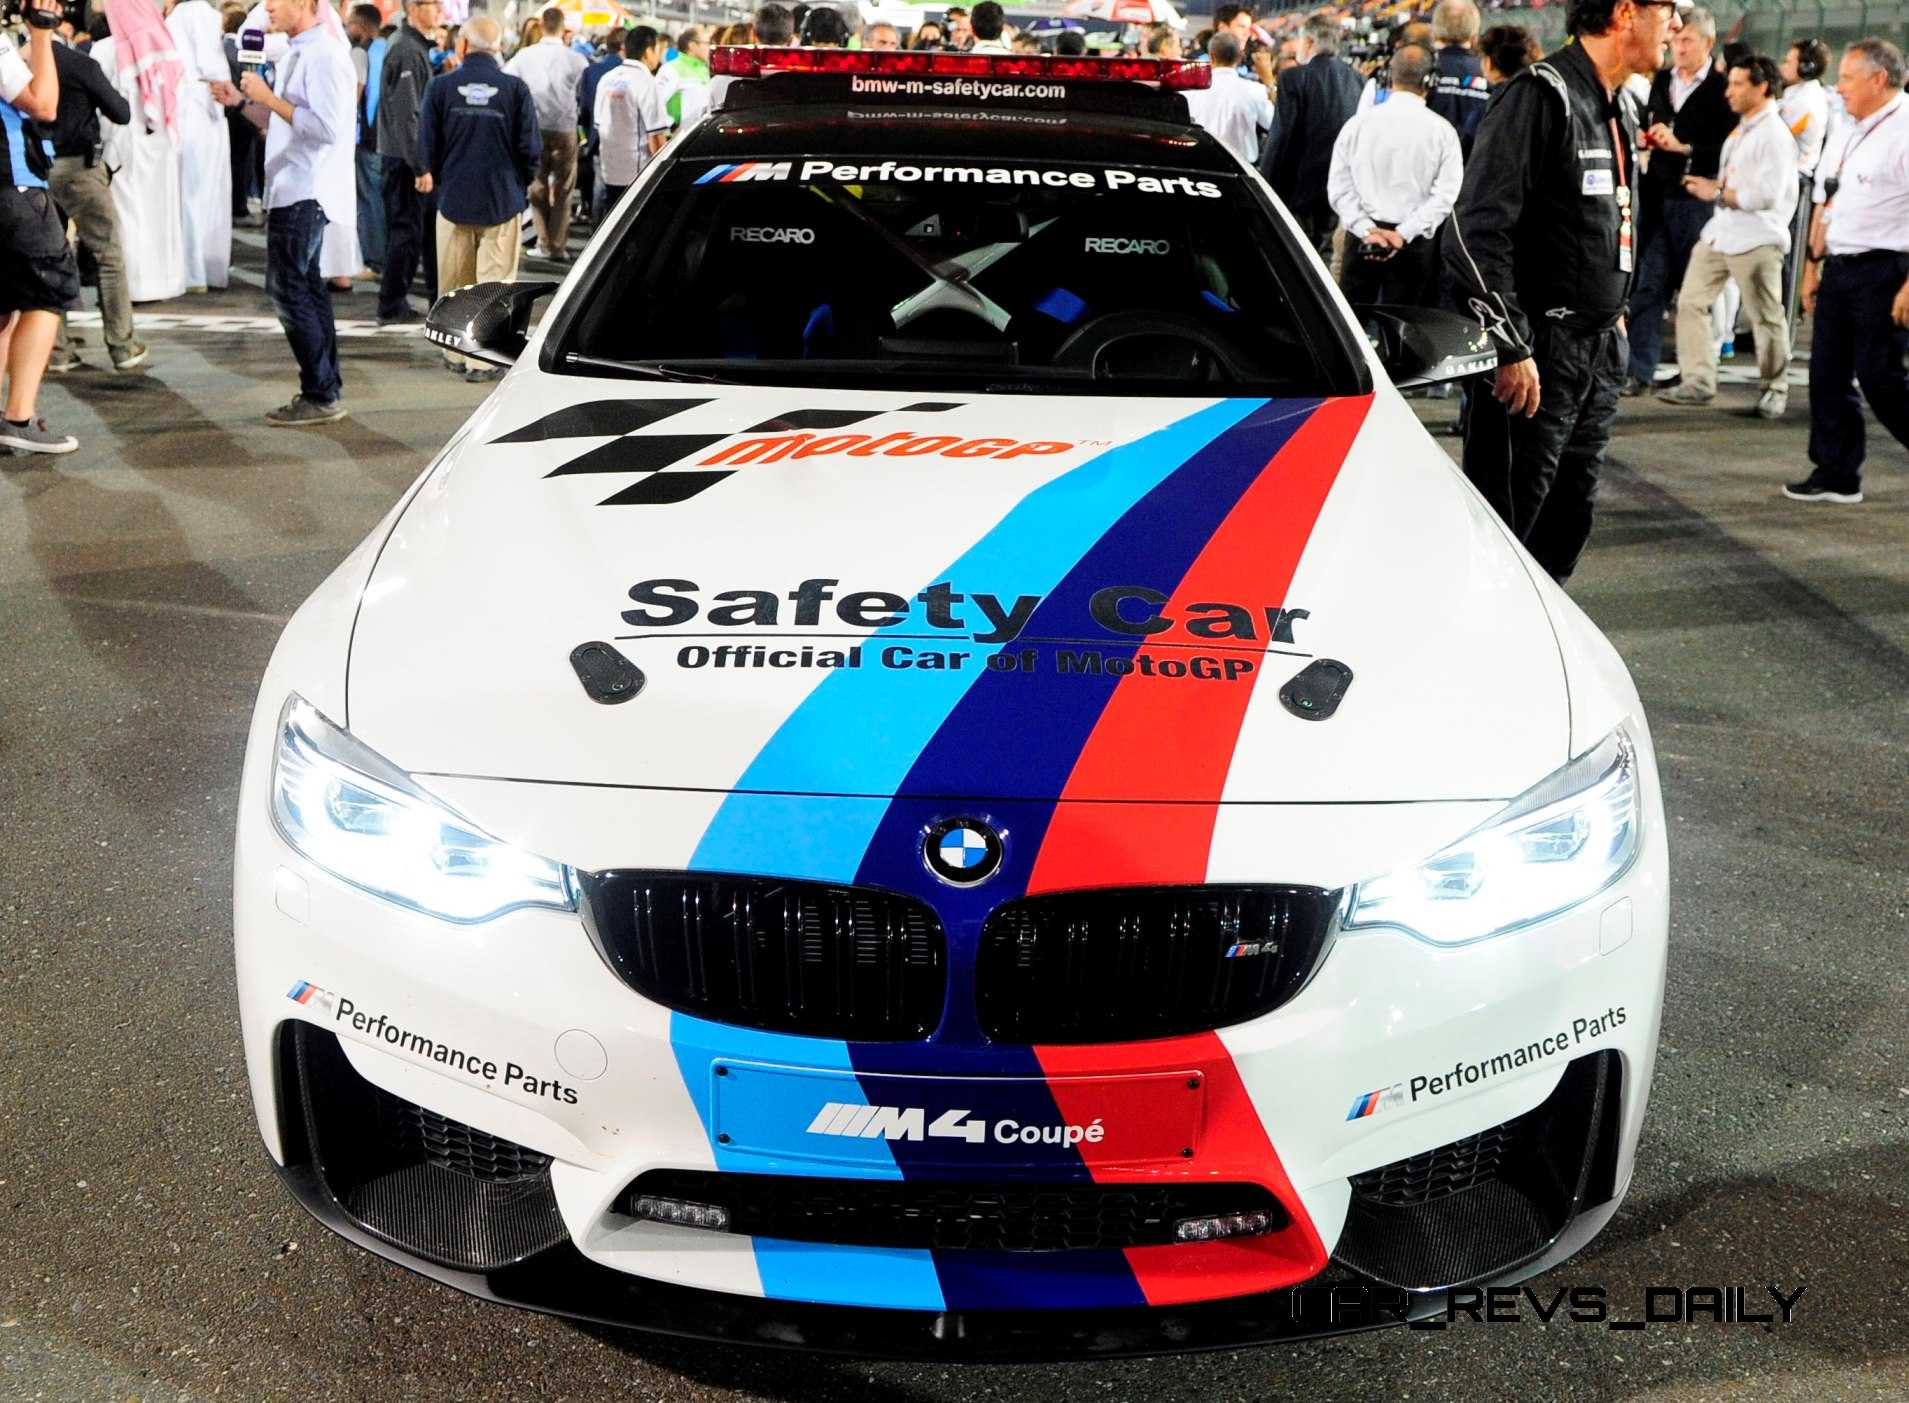 Bmw m4 safety car launched for playstation s gran turismo 6